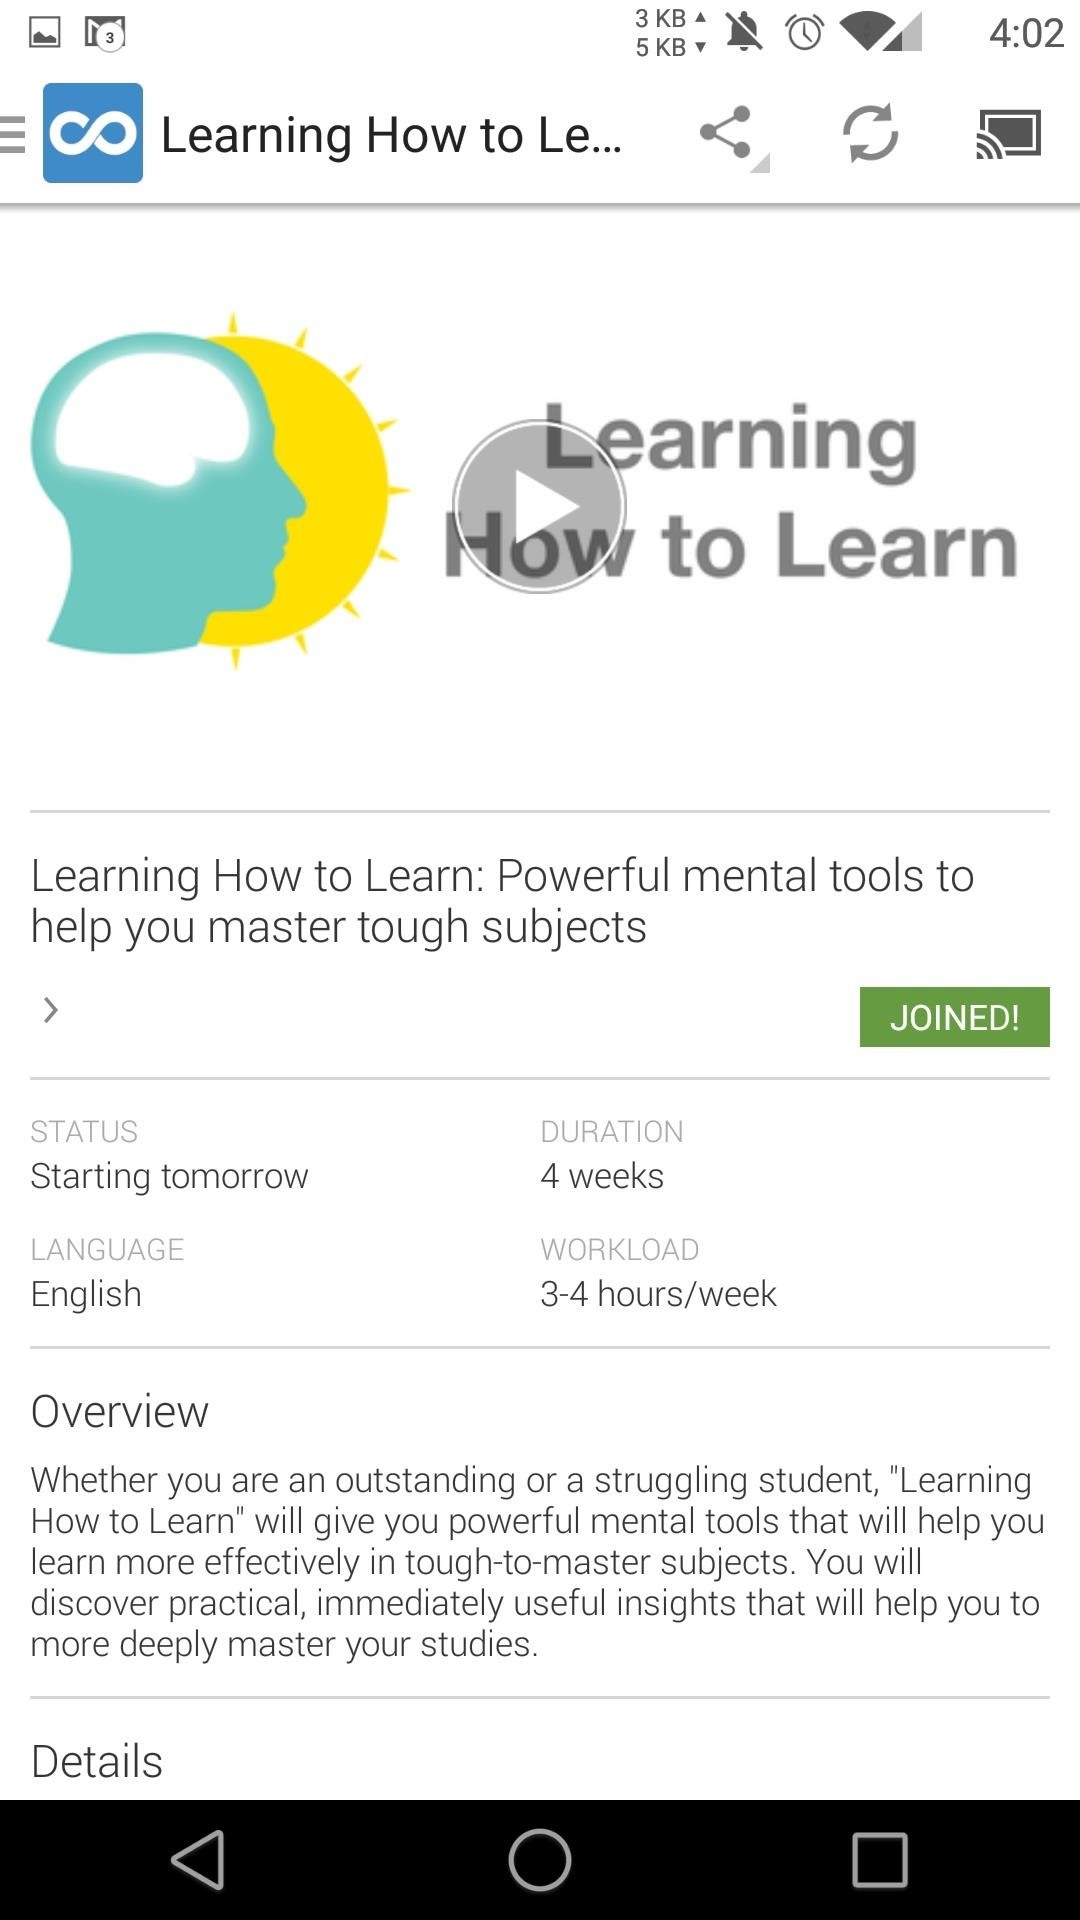 How to Take Free Classes at Home with Coursera & Your